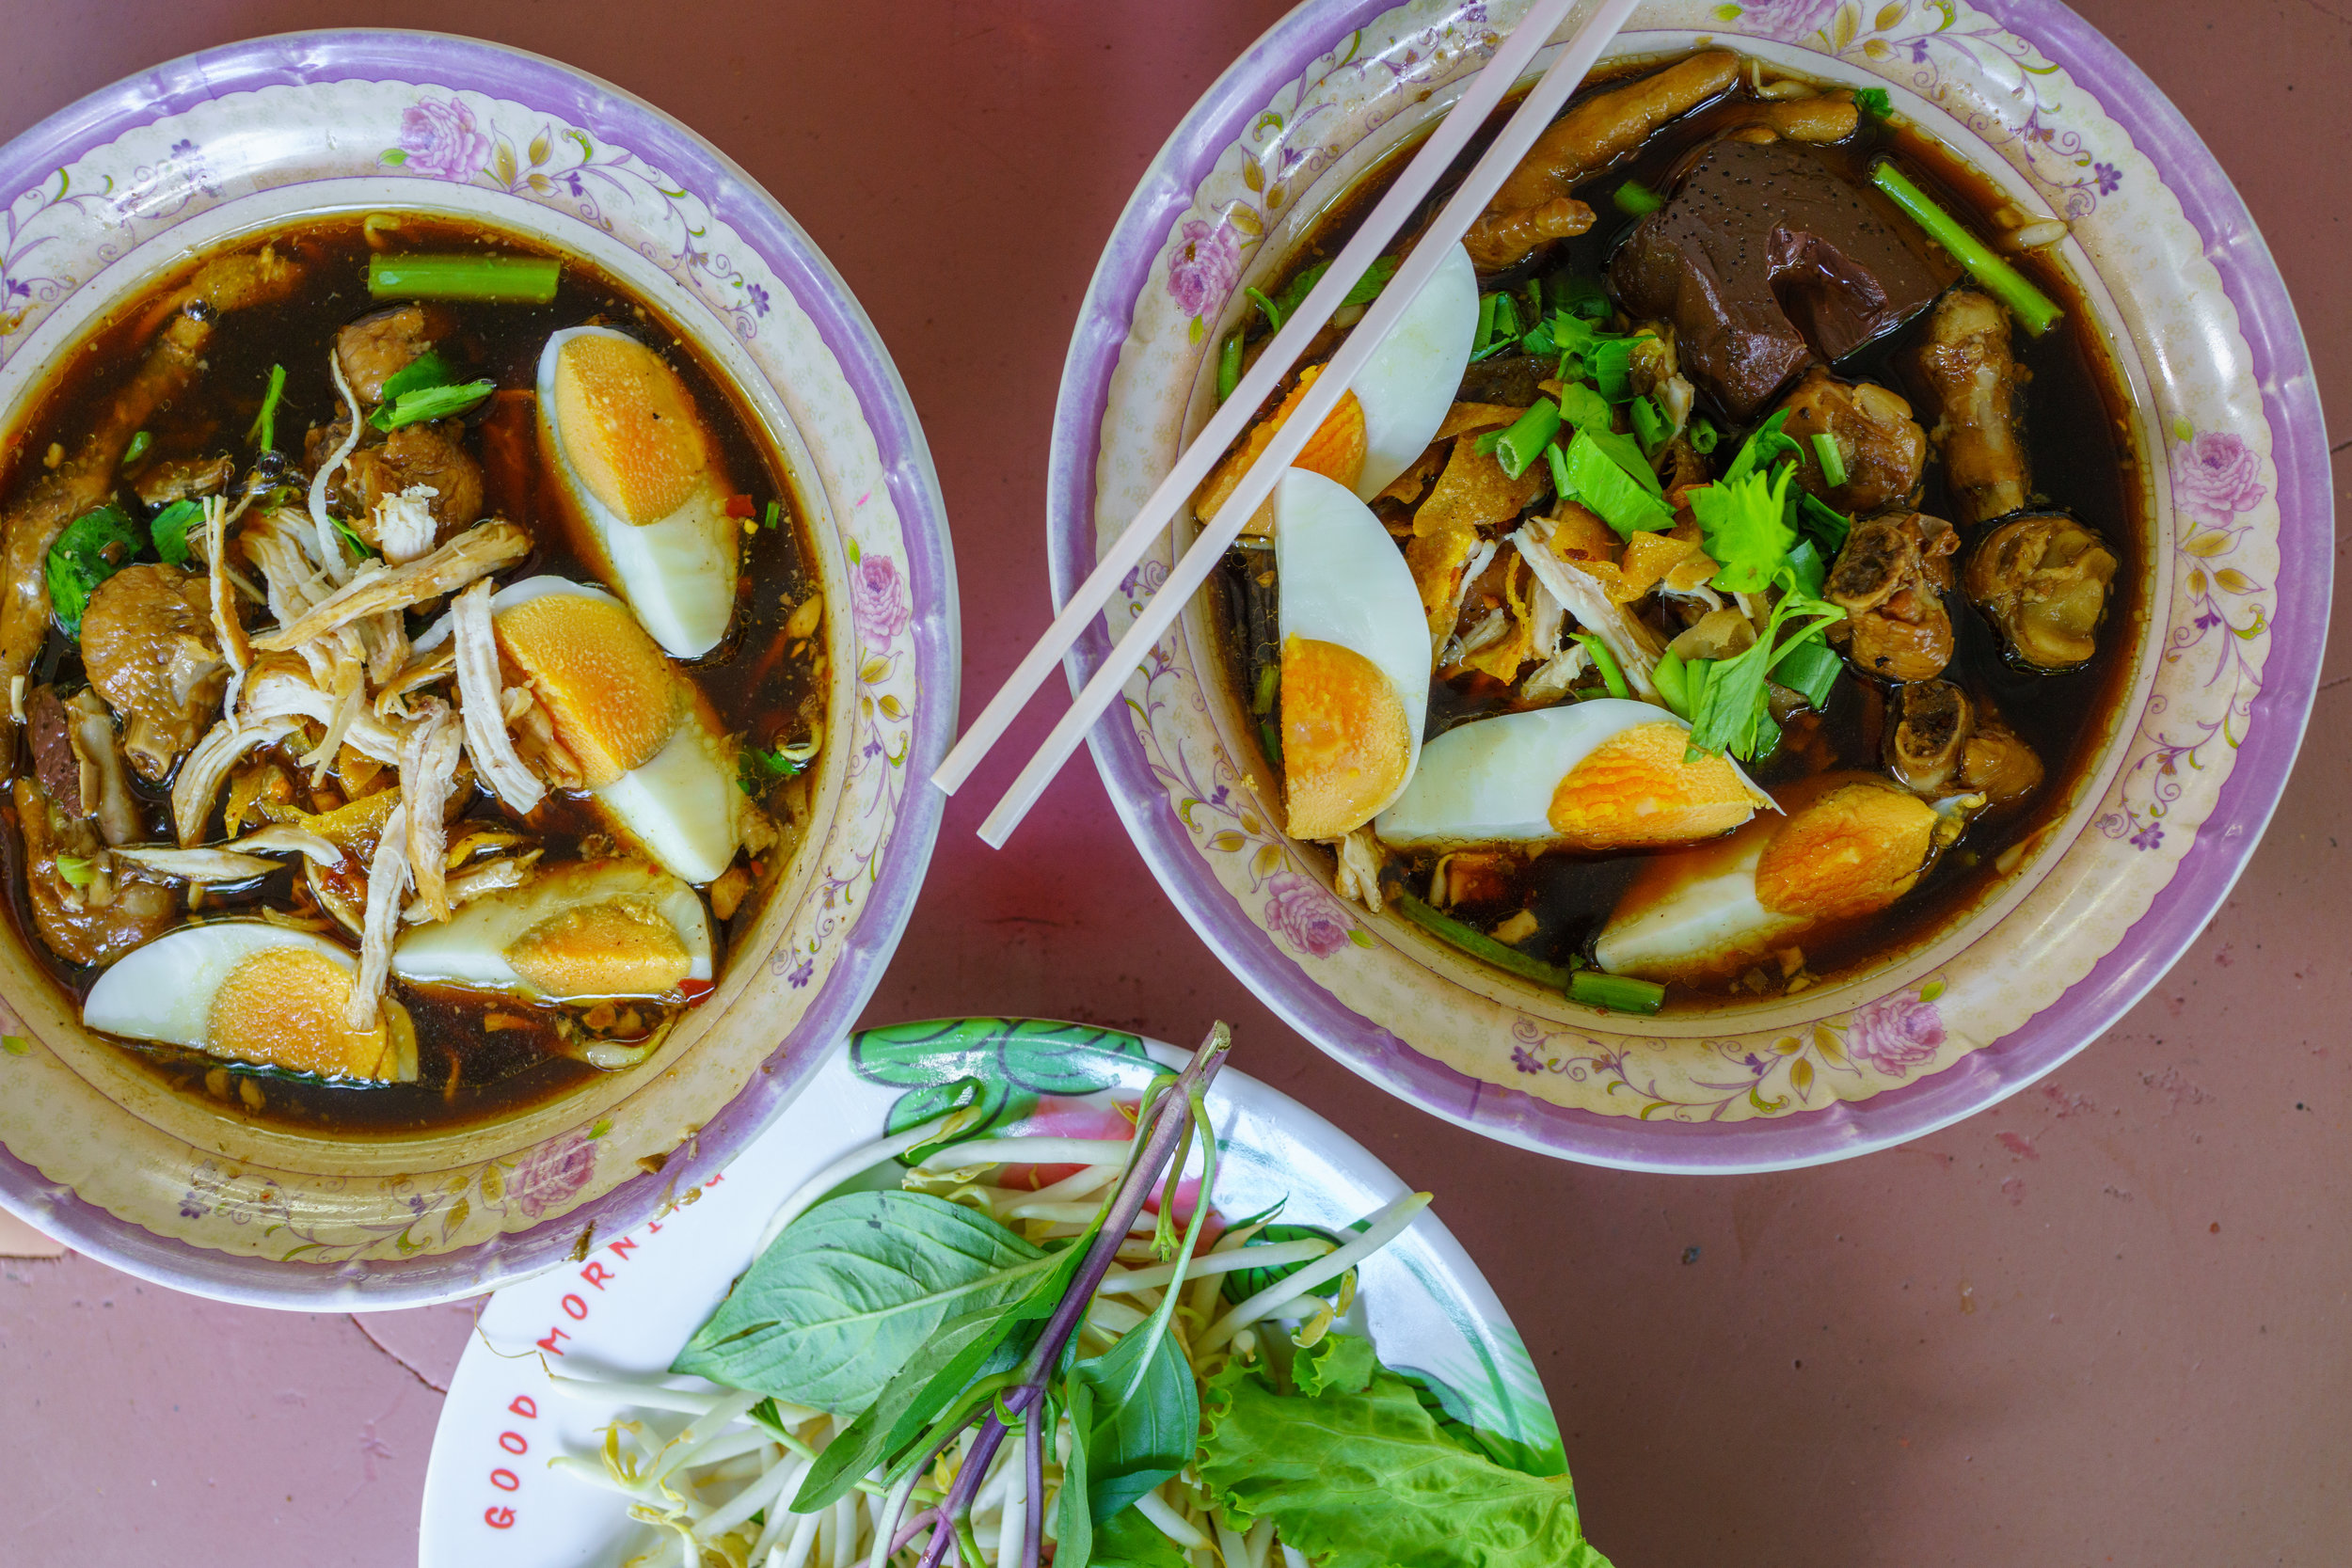 Kuay teow gai , chicken soup, for lunch at a street vendor in Bangkok